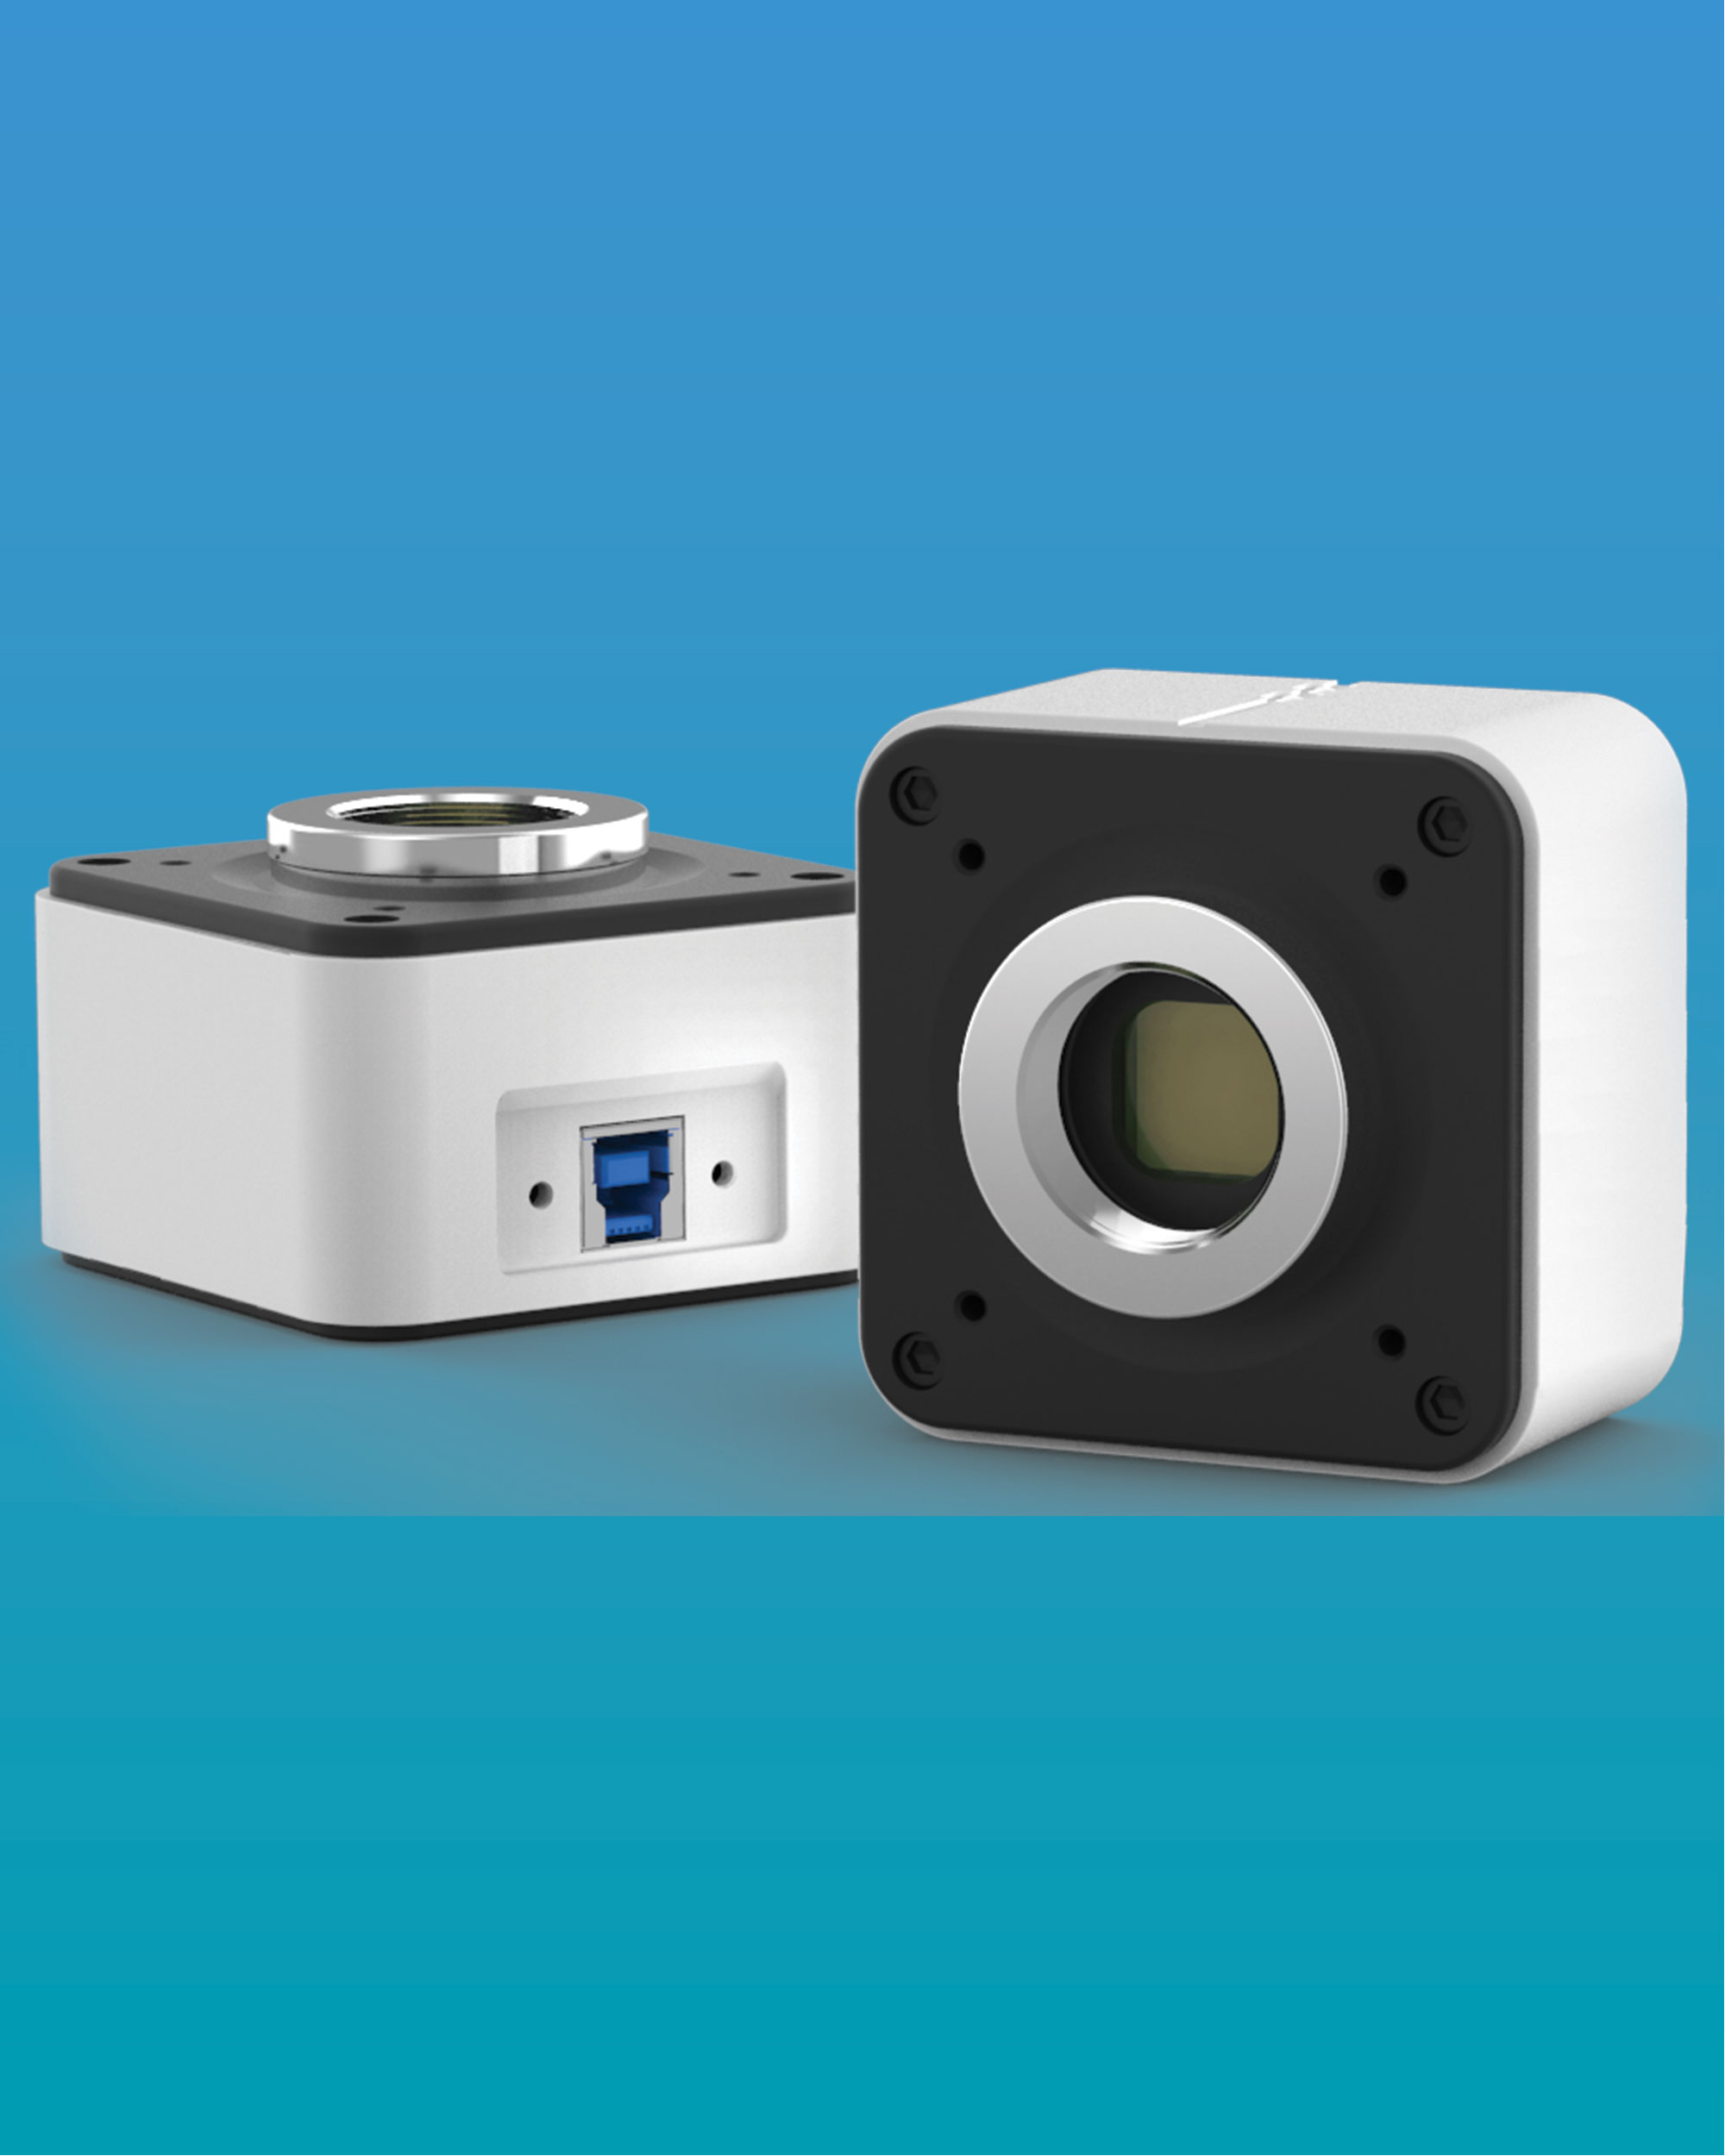 [LC-33] 20.0 MP USB3.0 Digital Camera for Fluorescence, Biological, Polarizing, Metallographic and Stereoscopic Microscope